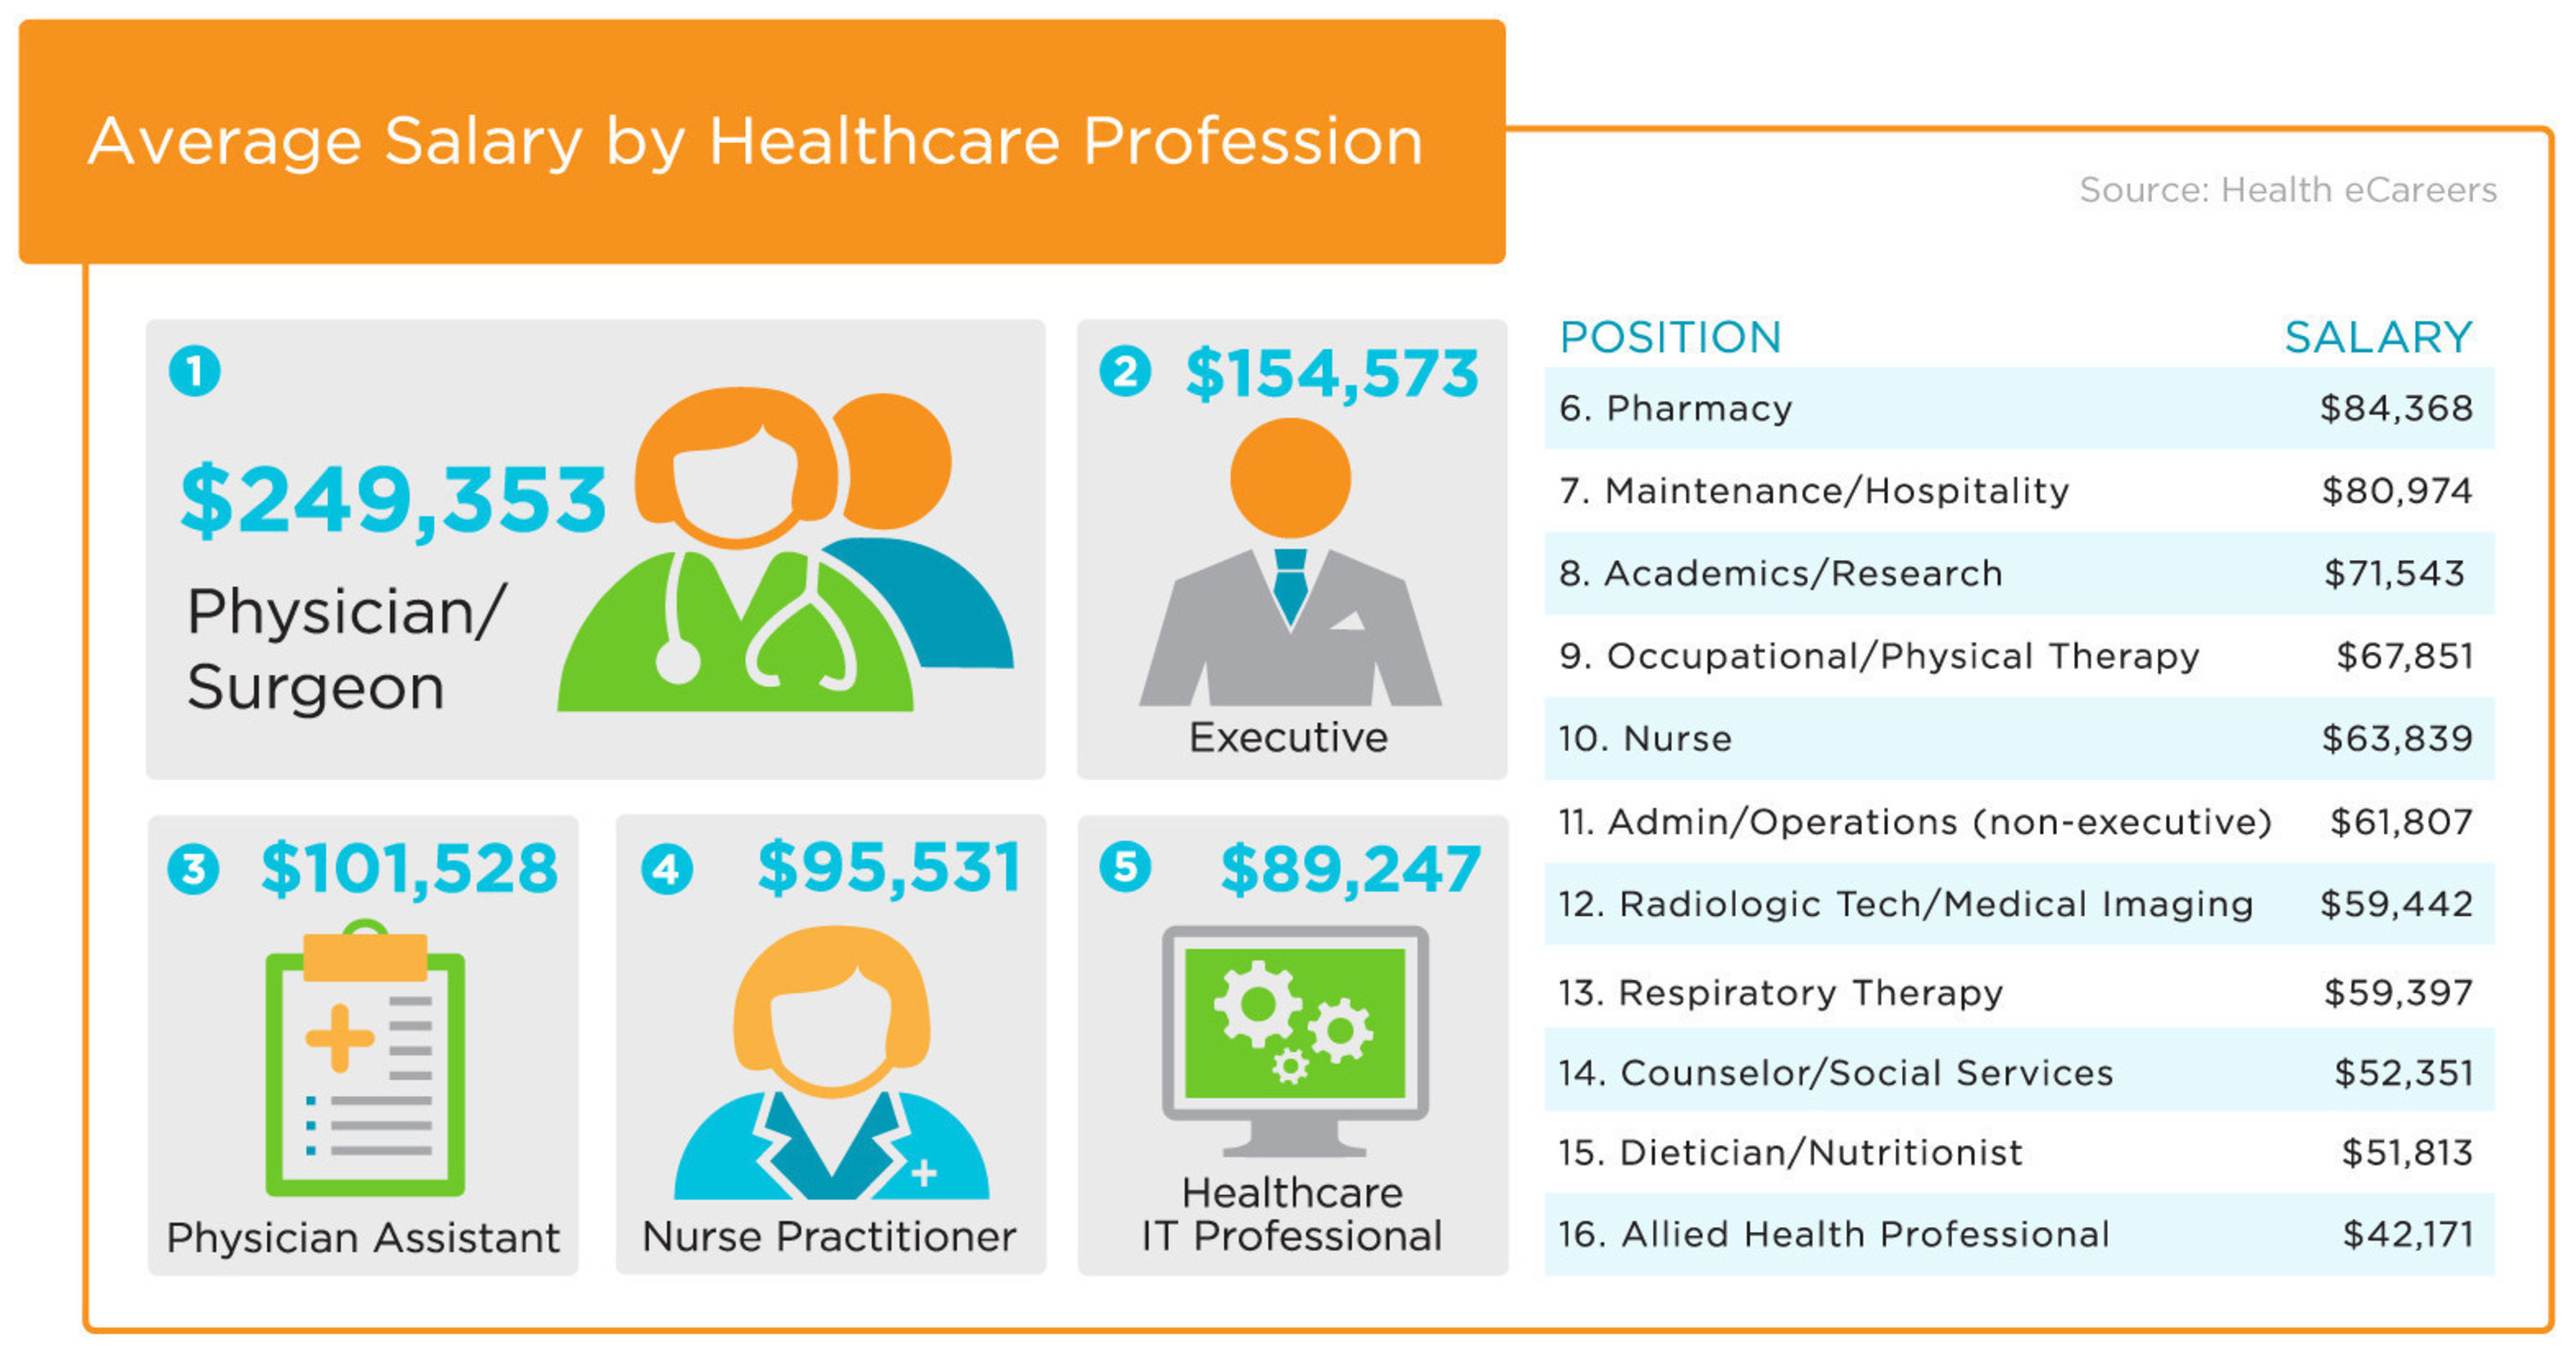 New Study by Health eCareers Shows Most Healthcare Professionals Would Change Jobs for Better Pay